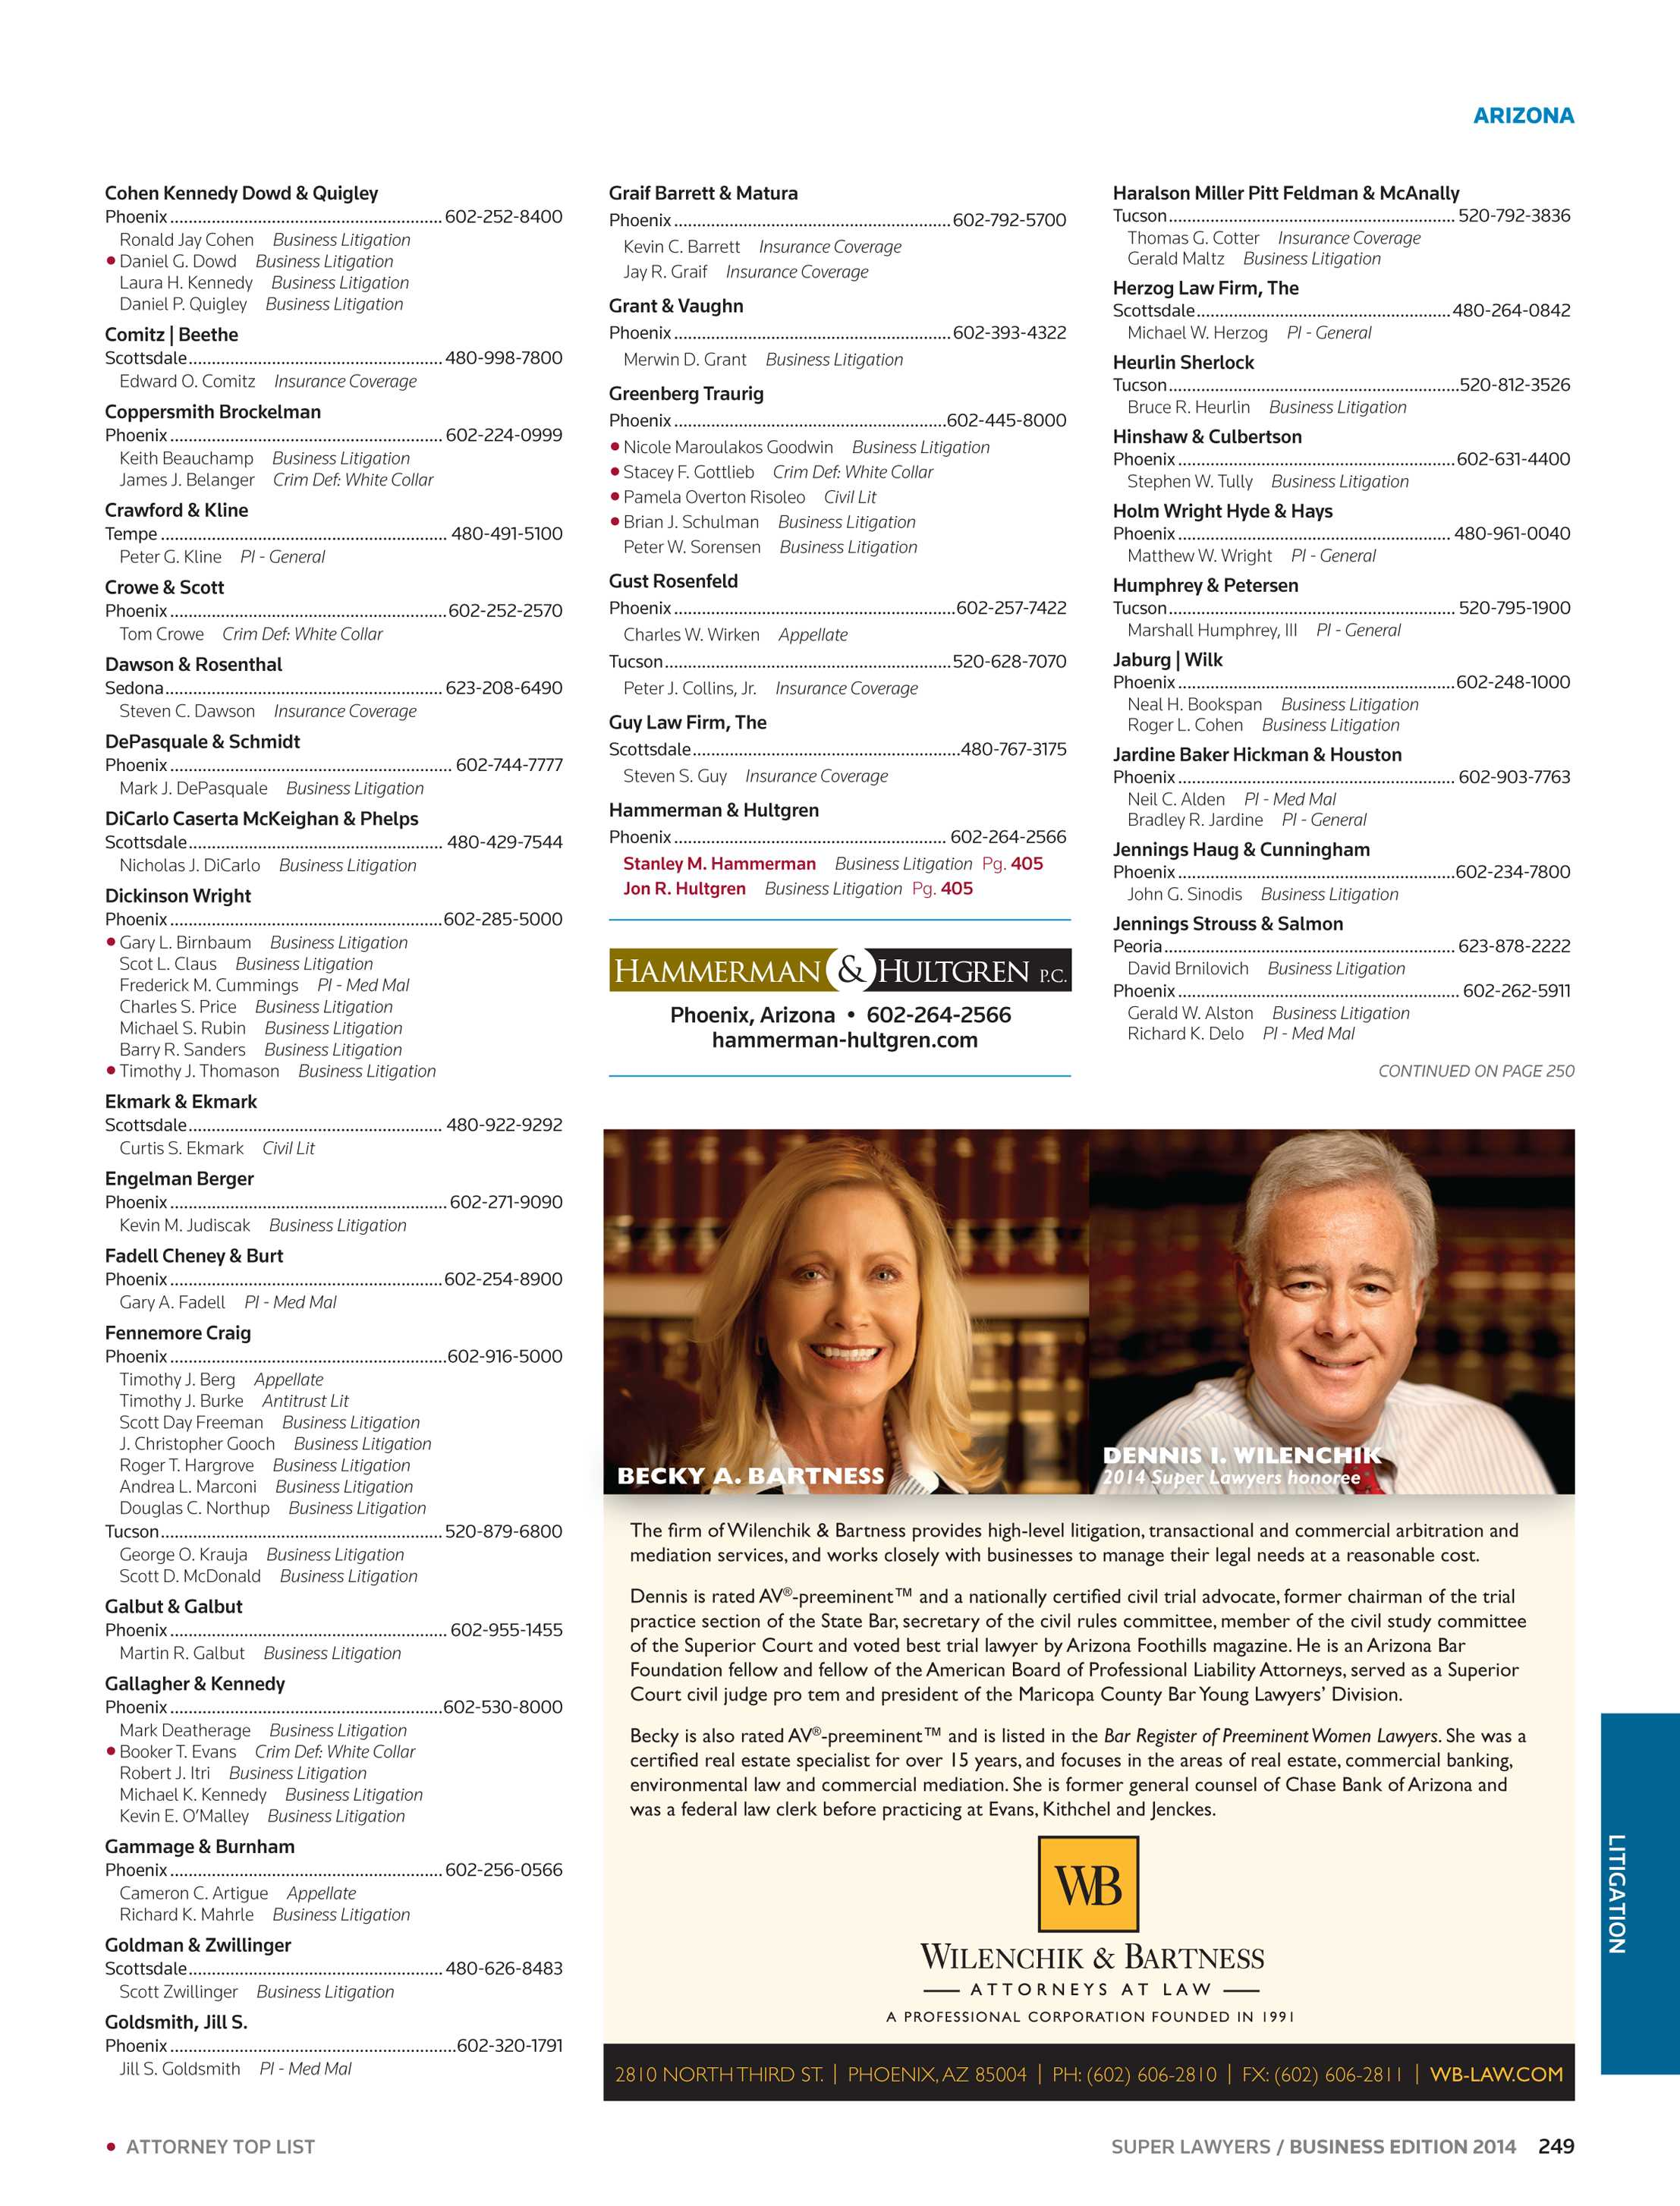 Super Lawyers - Business Edition 2014 - page 249